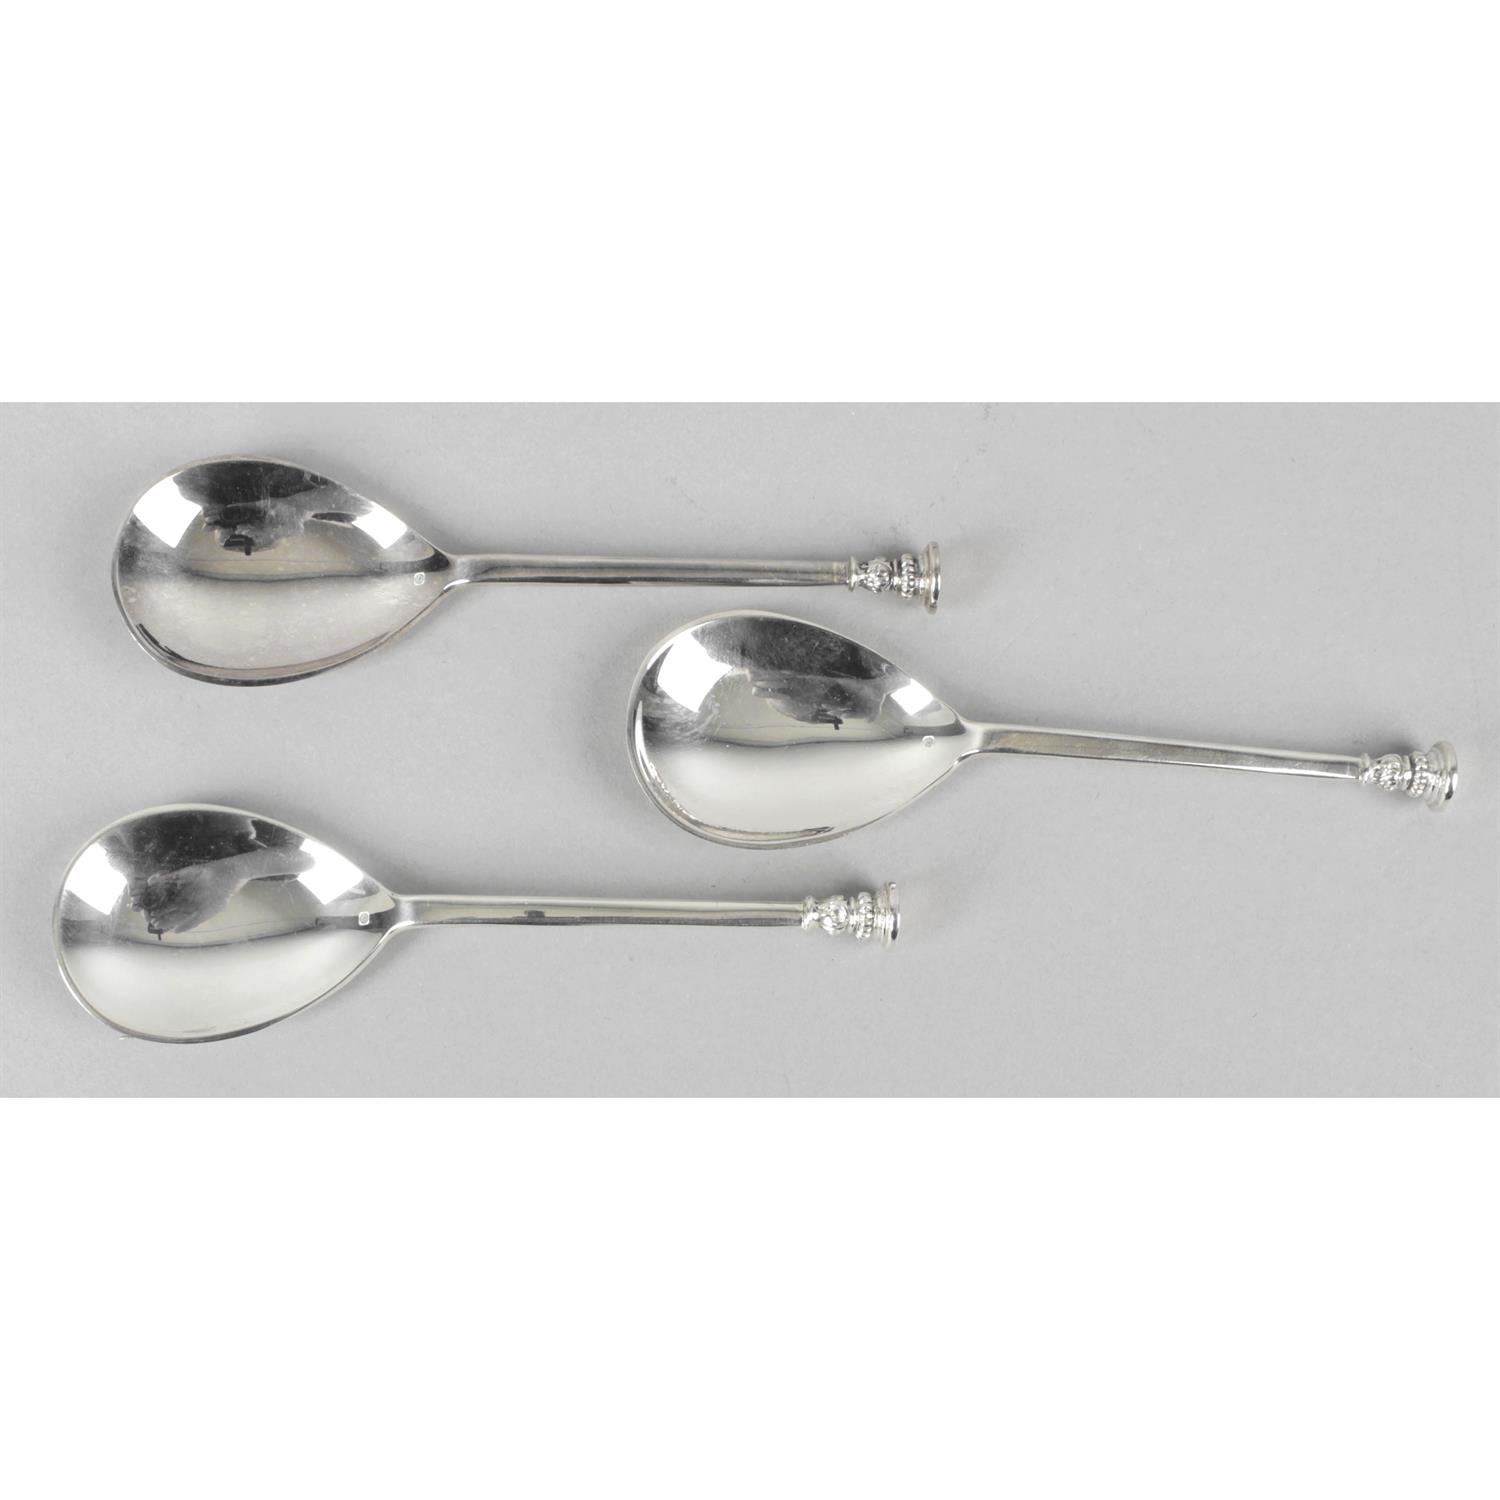 Three silver reproduction 16th century style seal-top spoons. - Image 2 of 2